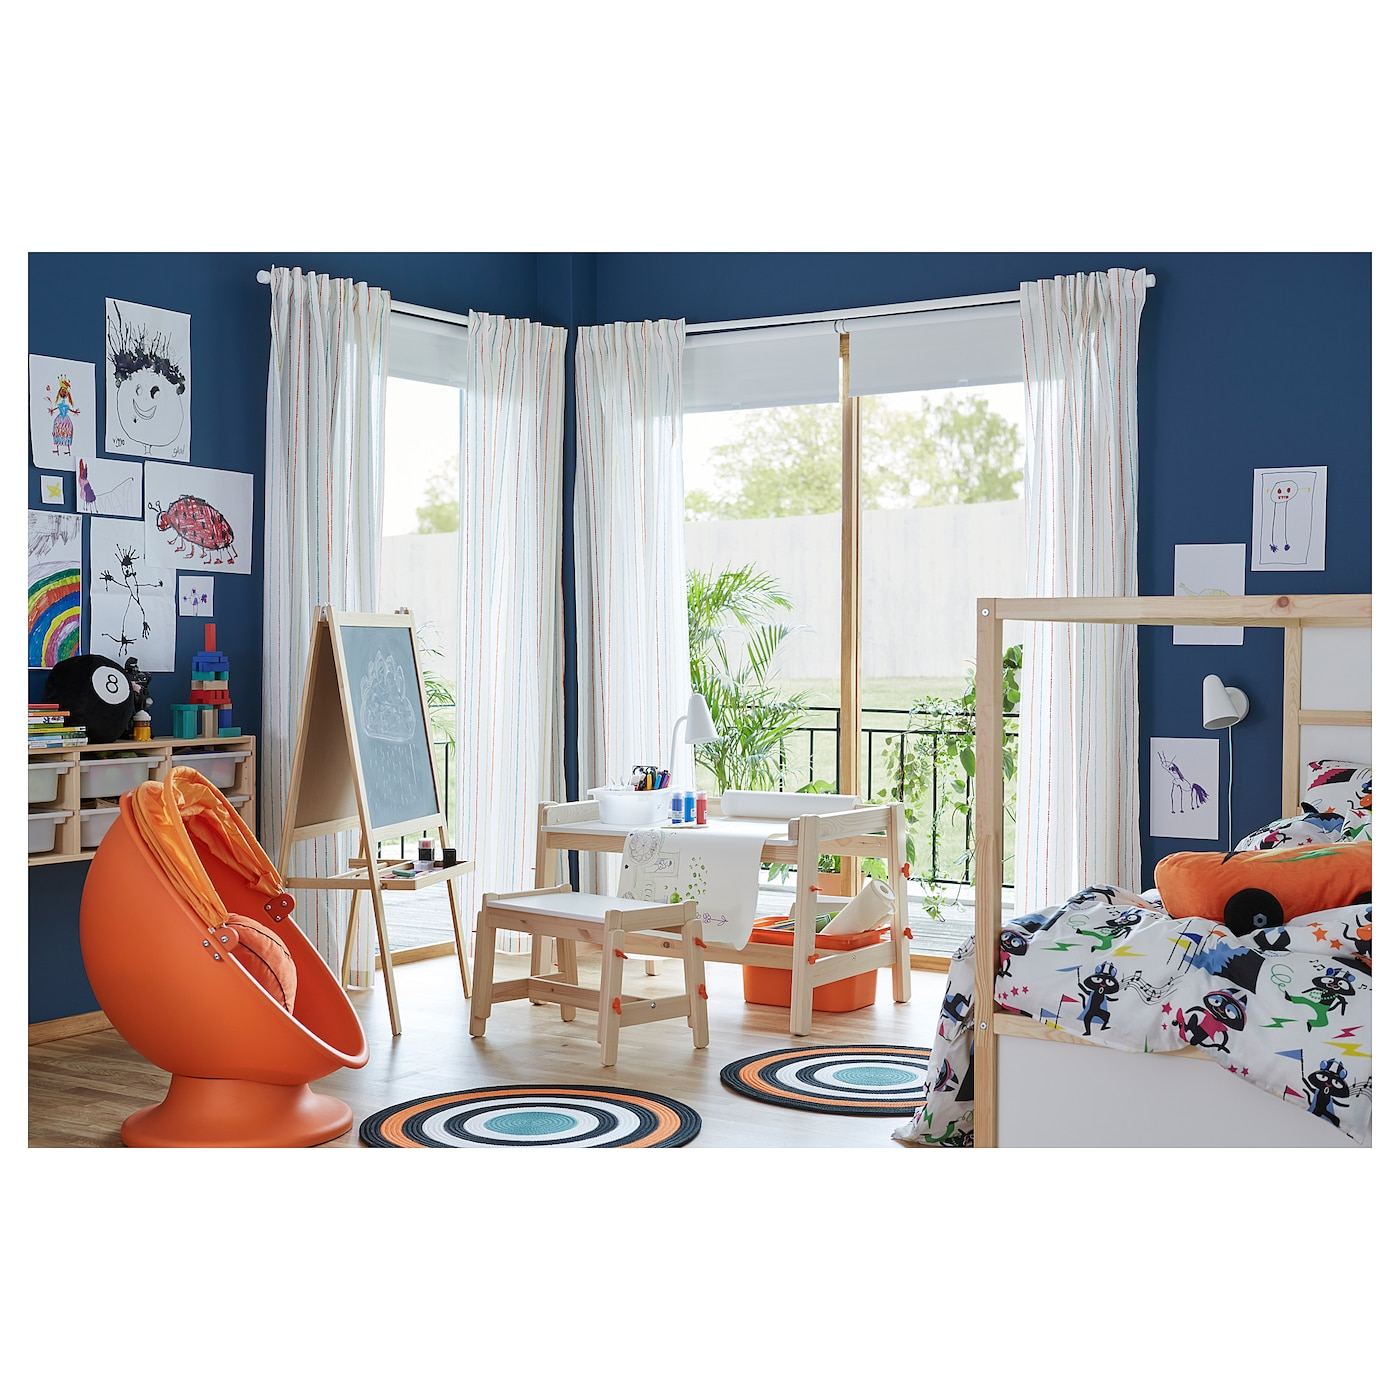 ikea ps l msk fauteuil pivotant orange orange clair ikea. Black Bedroom Furniture Sets. Home Design Ideas